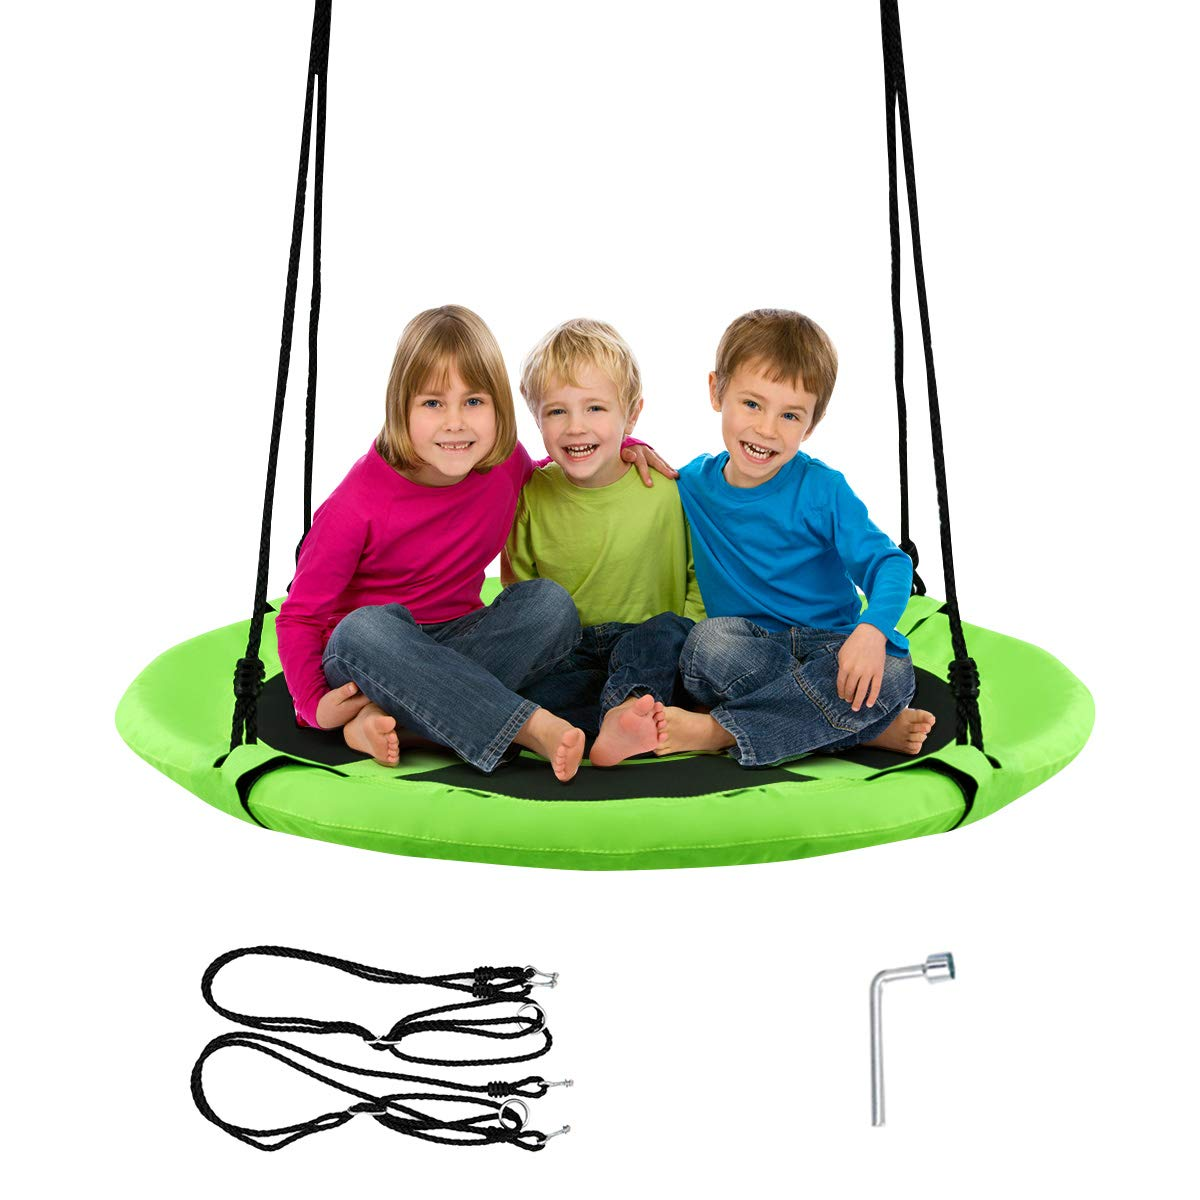 """Costzon 40"""" Waterproof Saucer Tree Swing Set, Outdoor Round Swing - Adjustable Hanging Ropes, Safe and Sturdy Swing for Children, for Park Backyard (Green)"""